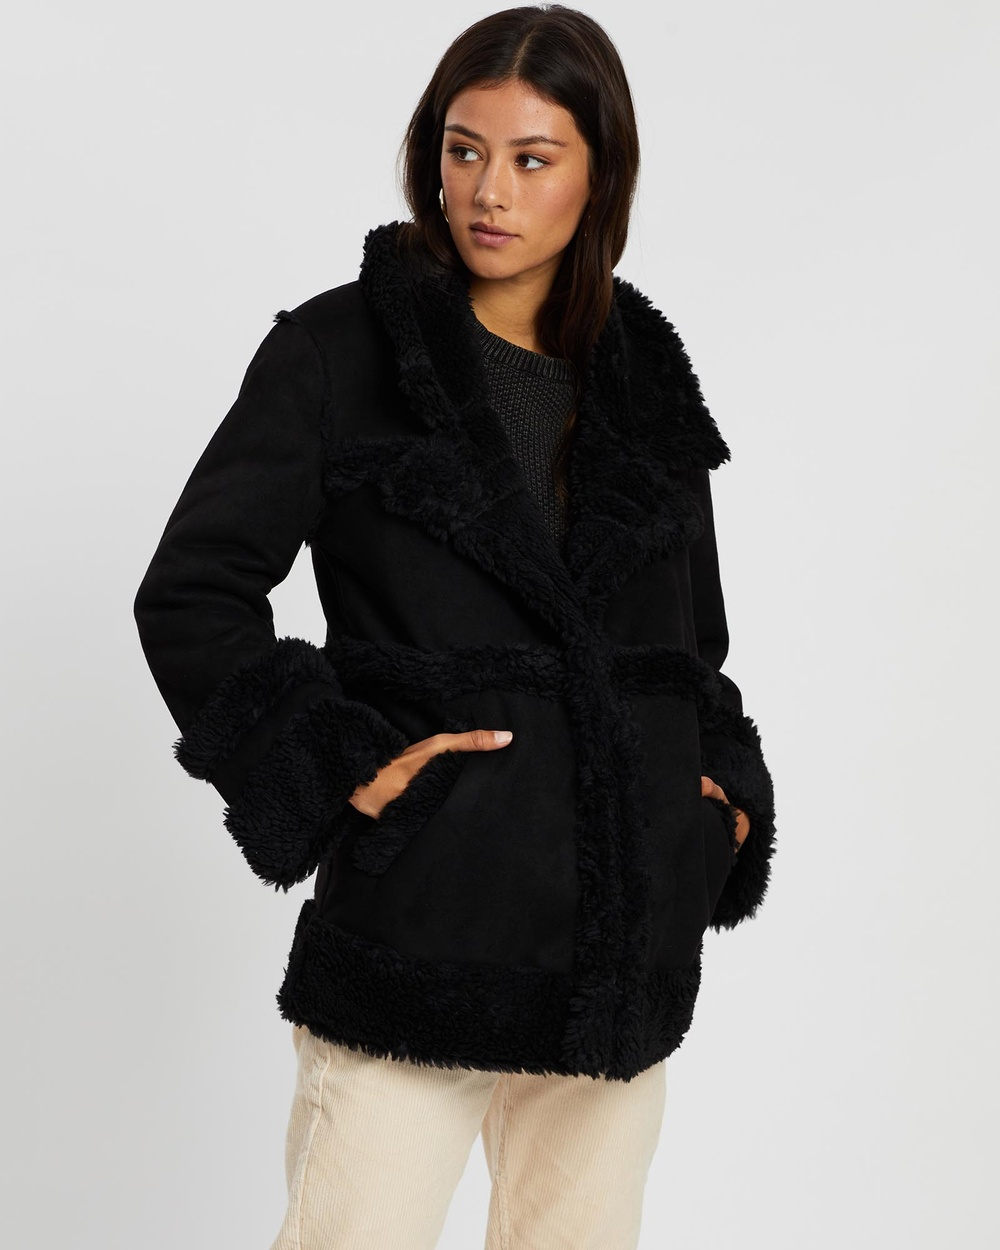 All About Eve 70s Shearling Jacket Coats & Jackets BLACK